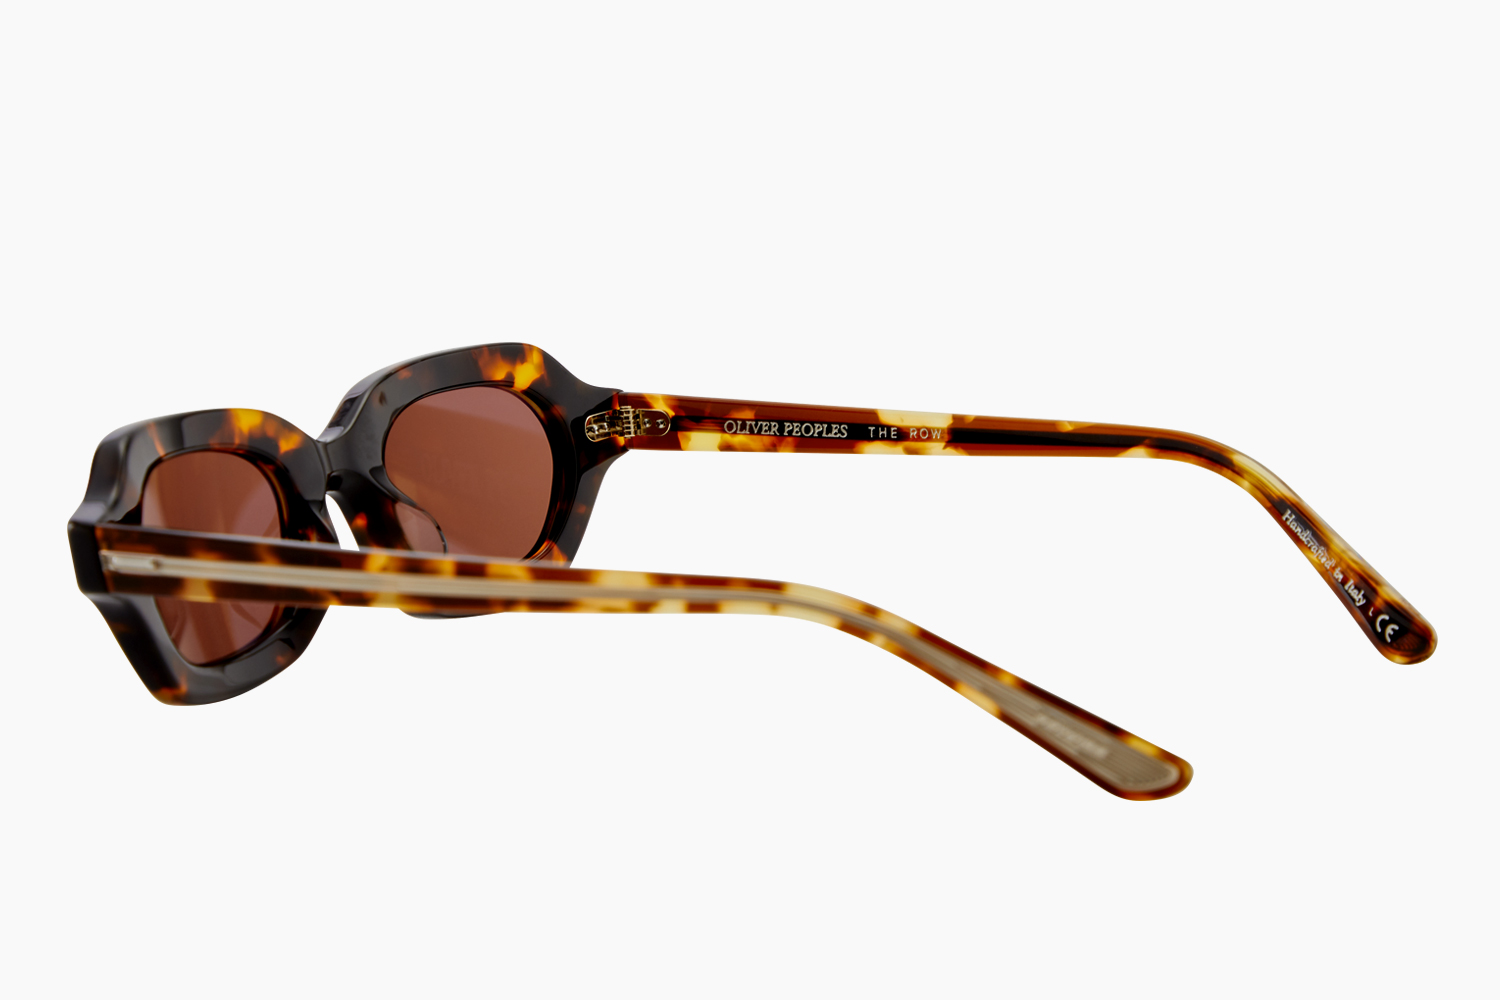 OLIVER PEOPLES THE ROW|L.A. CC - 1663C5|OLIVER PEOPLES